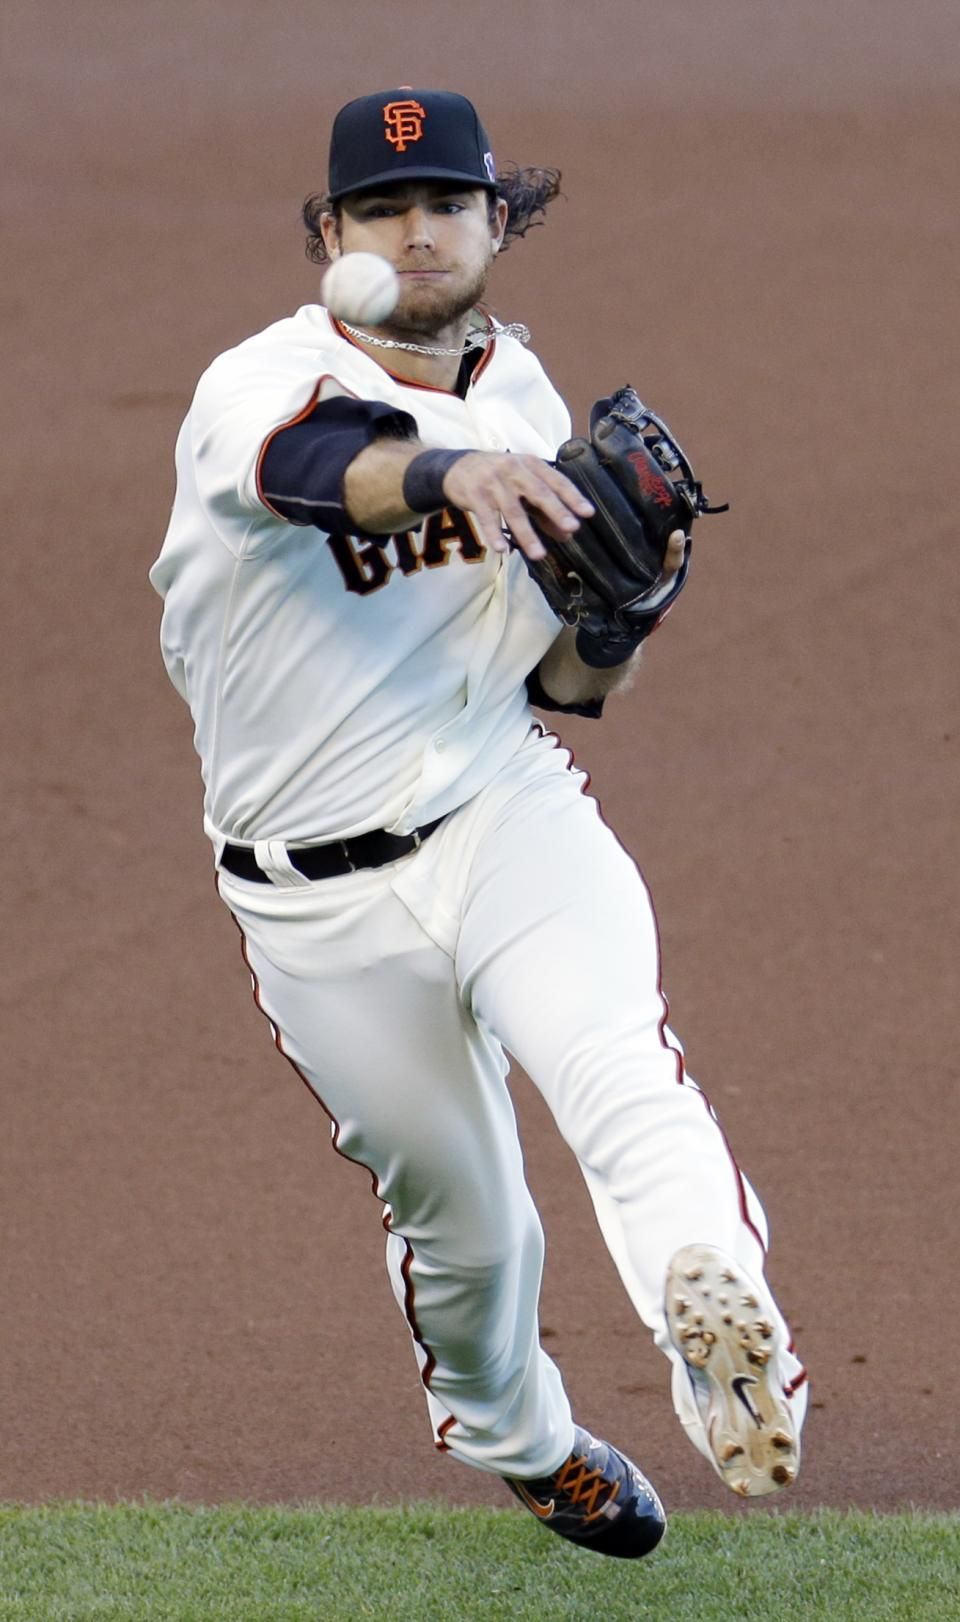 San Francisco Giants' Brandon Crawford makes a play on a ball hit by St. Louis Cardinals' Yadier Molina during the first inning of Game 2 of baseball's National League championship series Monday, Oct. 15, 2012, in San Francisco. (AP Photo/Eric Risberg)